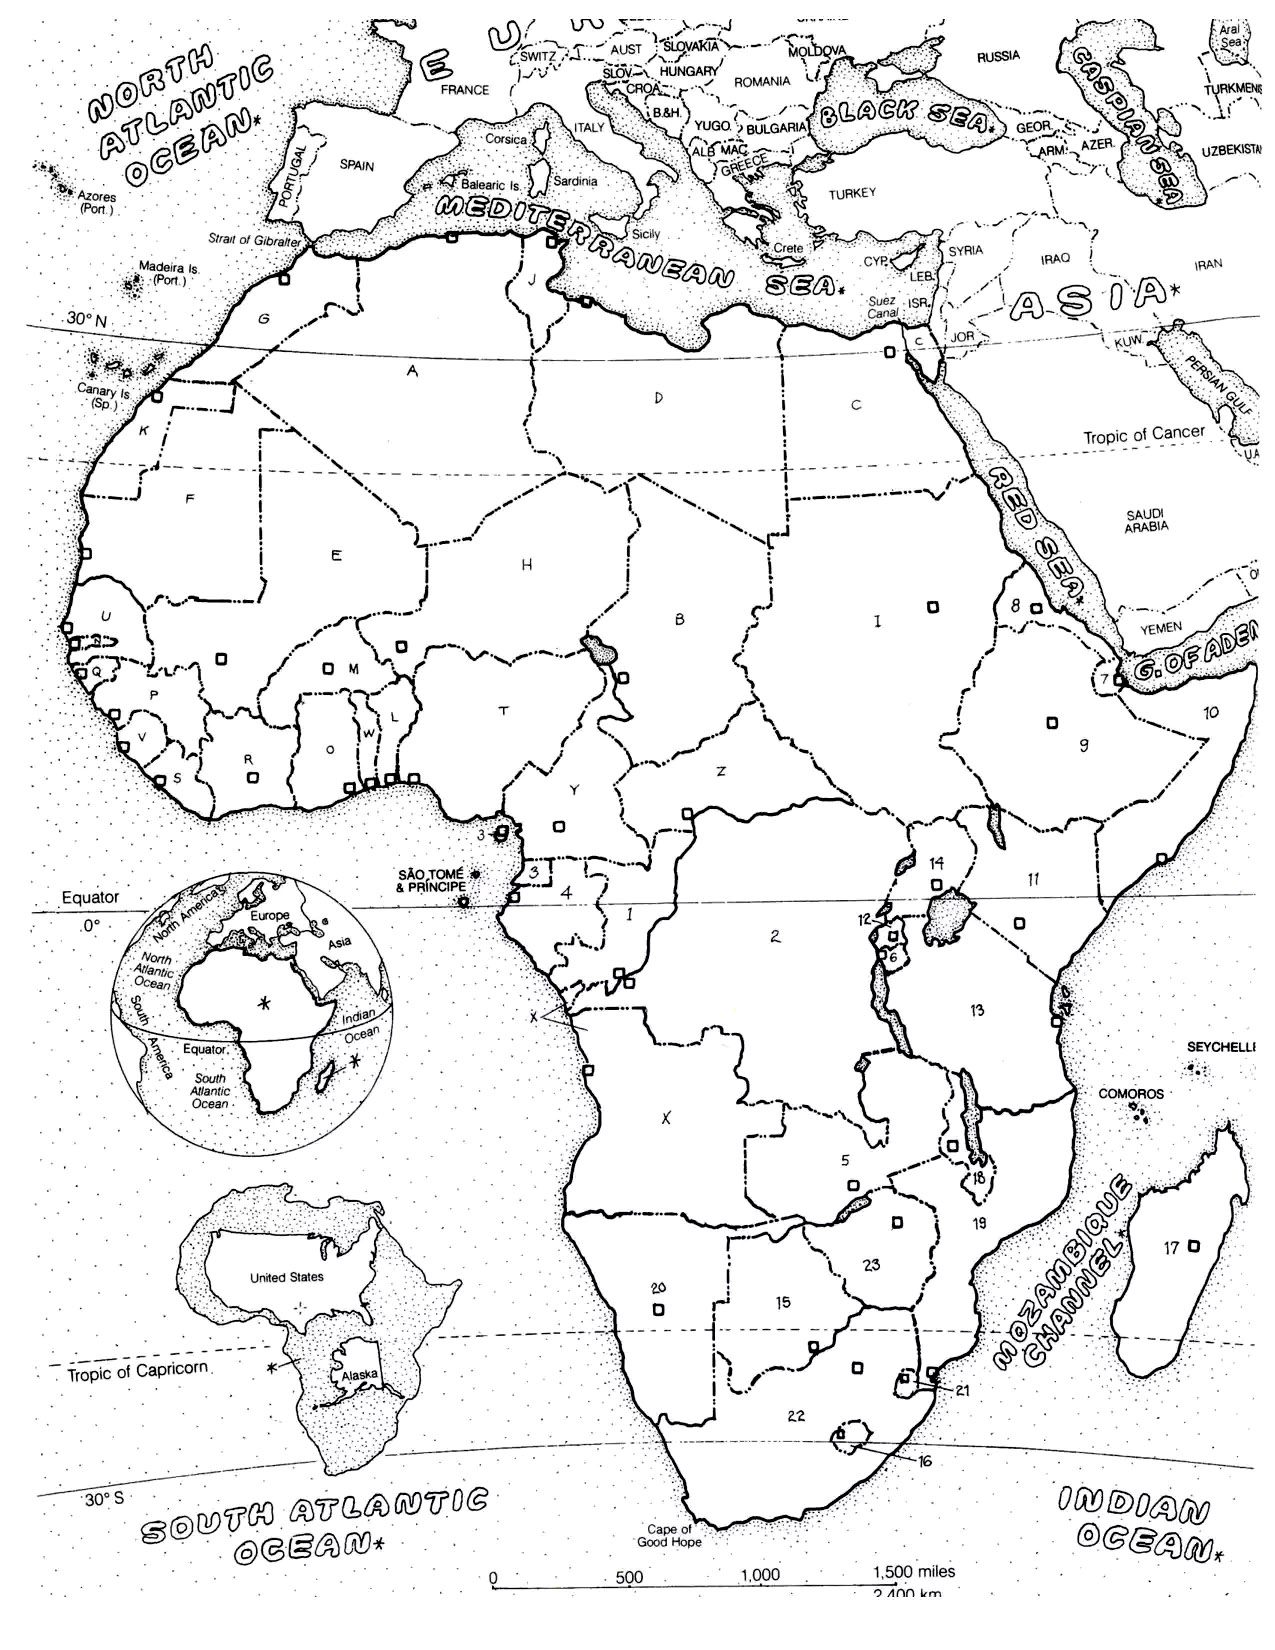 Africa Coloring Page Free Coloring Pages Download | Xsibe asia ...